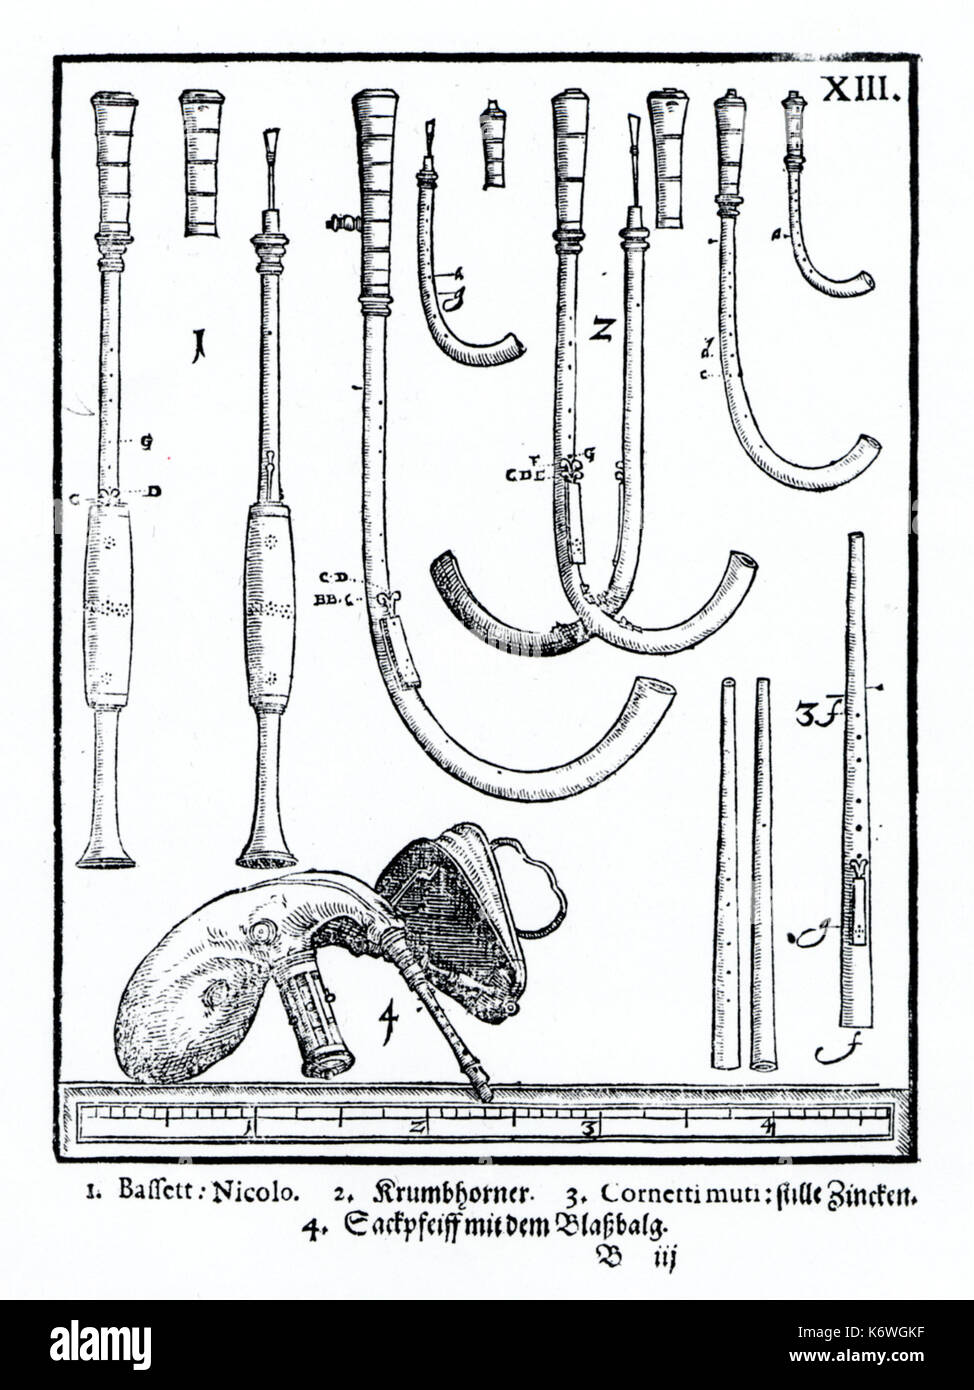 Plate XII from Praetorius's 'Syntagma Musicum' showingconsort/ ensemble of crumhorns, cornamuse, and bagpipe with bellows. Dating from 1619.   16th century Renaissance, 17th century early Baroque.  Praetorius: German composer and musicologist of sacred and profance music, 18 February 1571 - 15 February 1621. - Stock Image